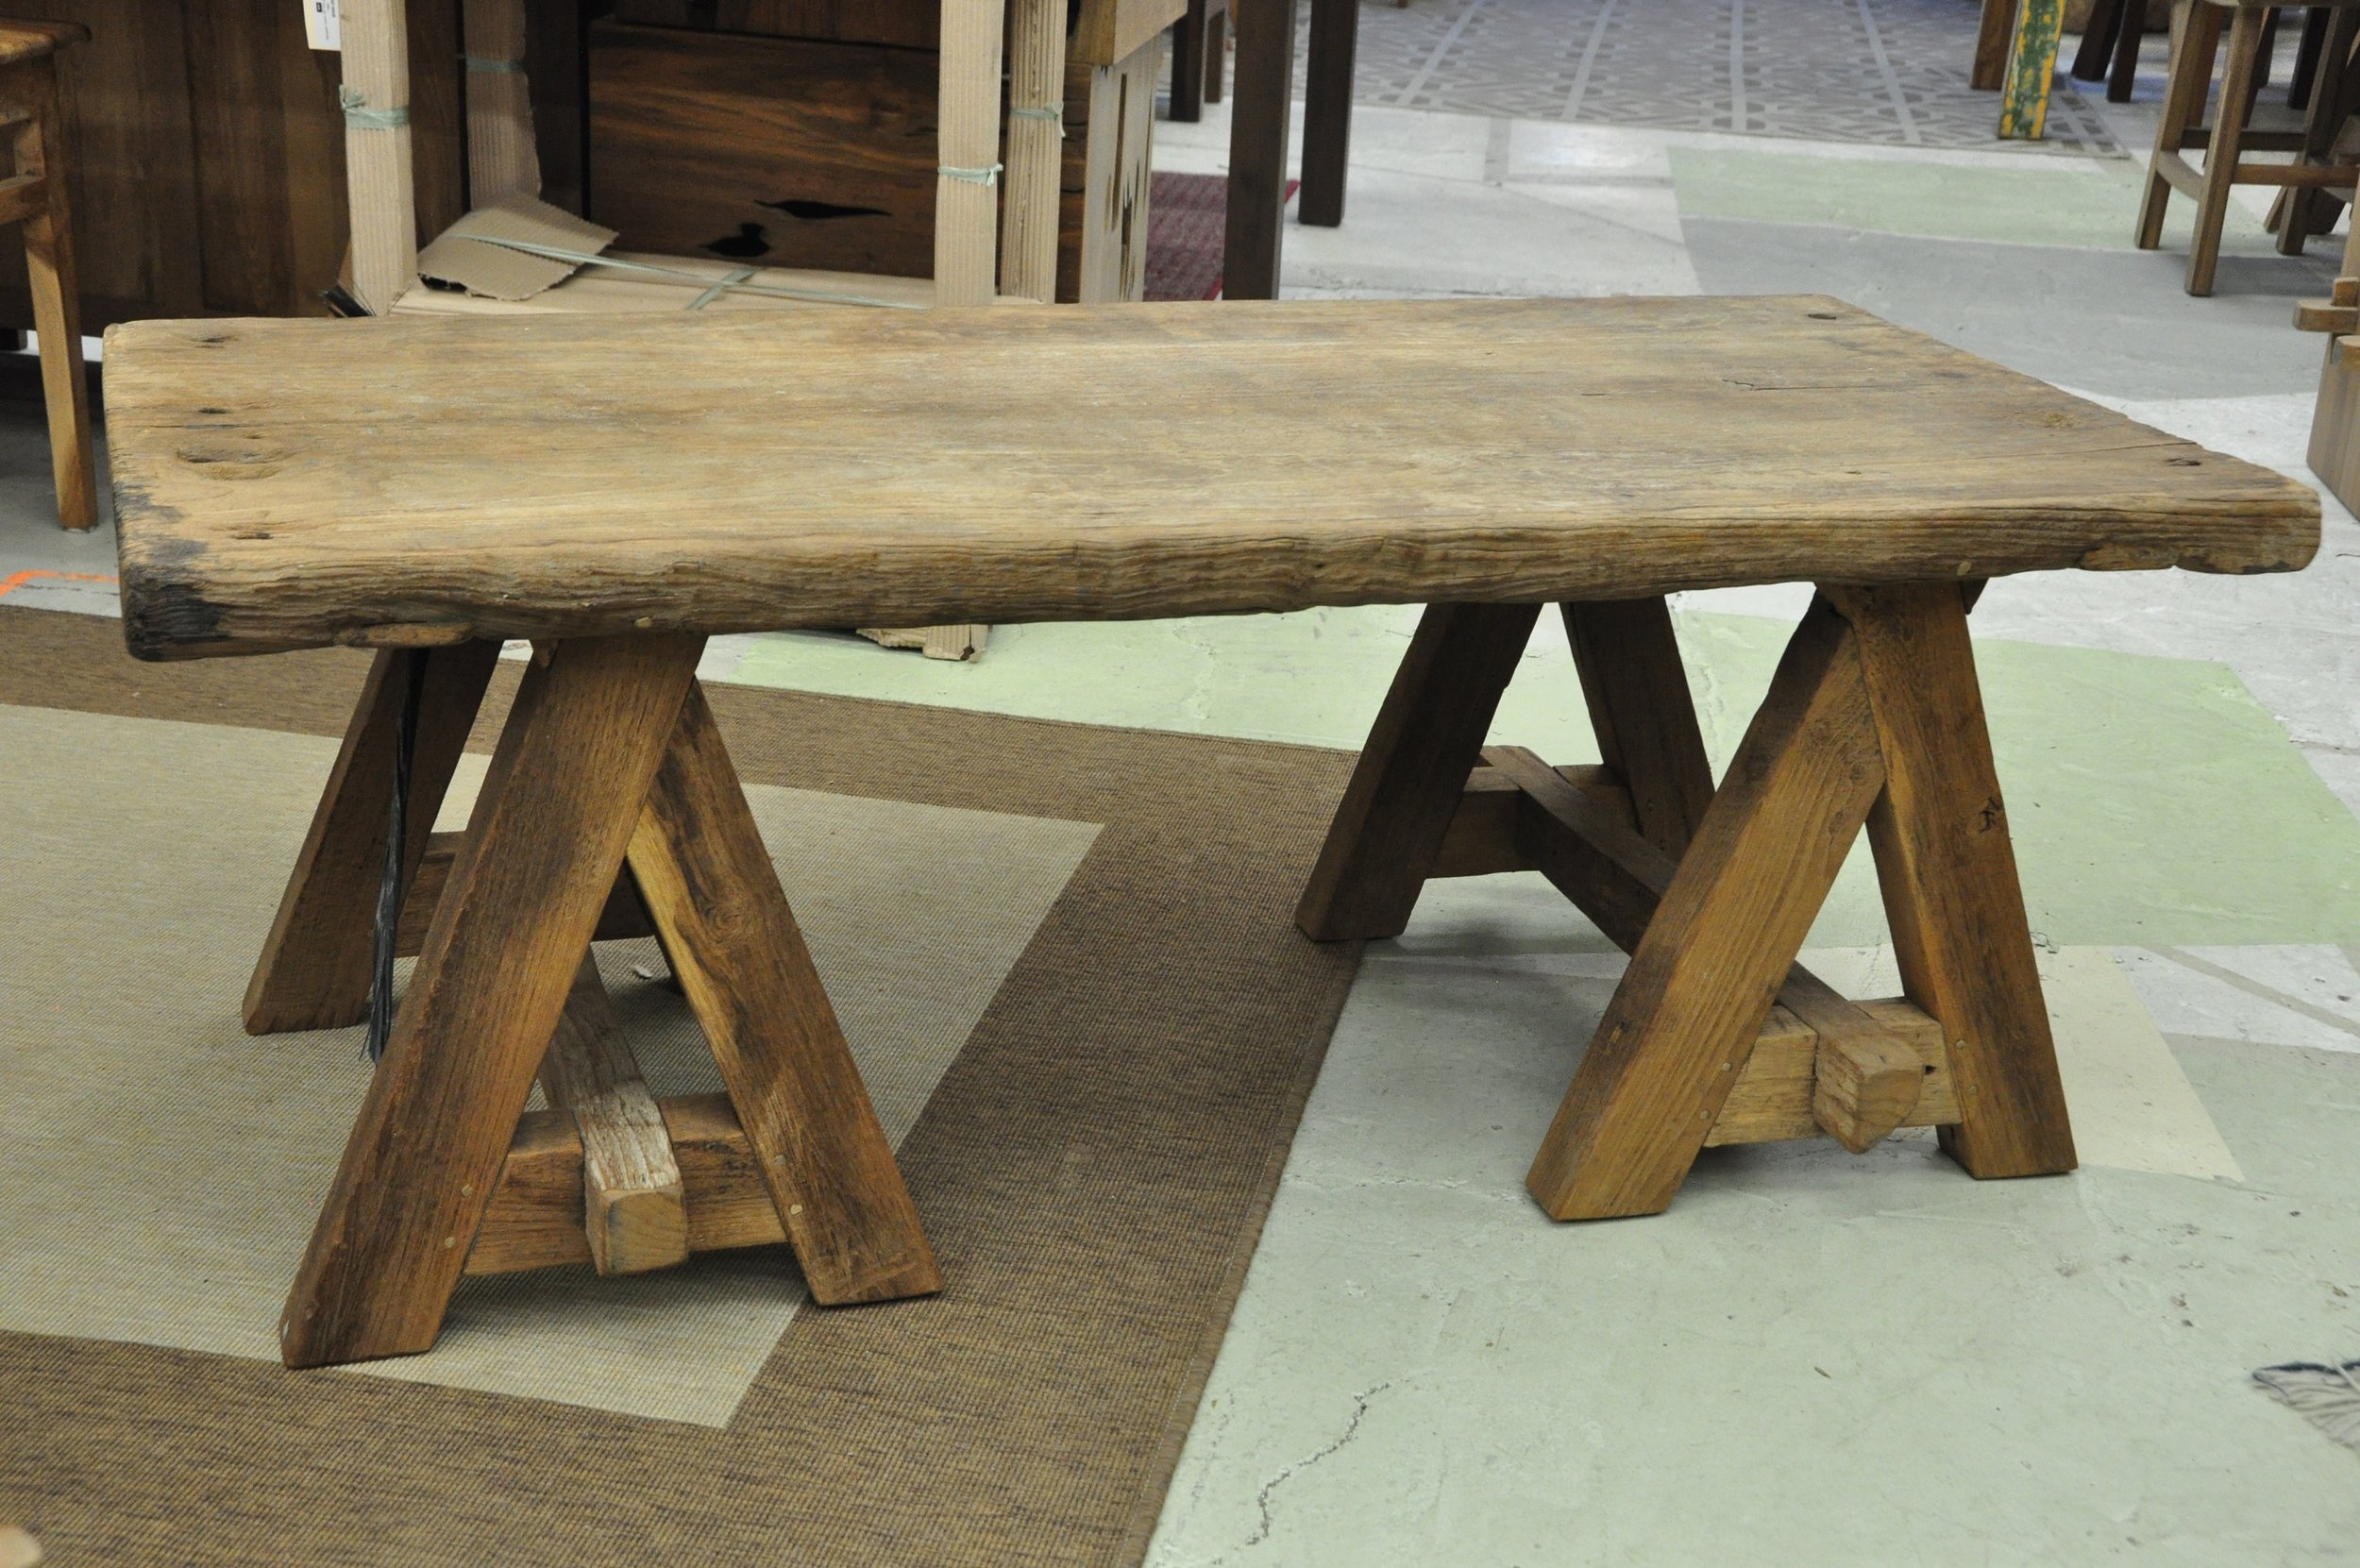 """Cagak Coffee Table  47""""Wx23""""Dx14""""H Price: $449  59""""W x 23""""D x 17.75""""H Price: $489  60""""W x 31""""D x 14""""H Price: $524  39.5""""W x 39.5""""D x 18""""H Price: $722"""